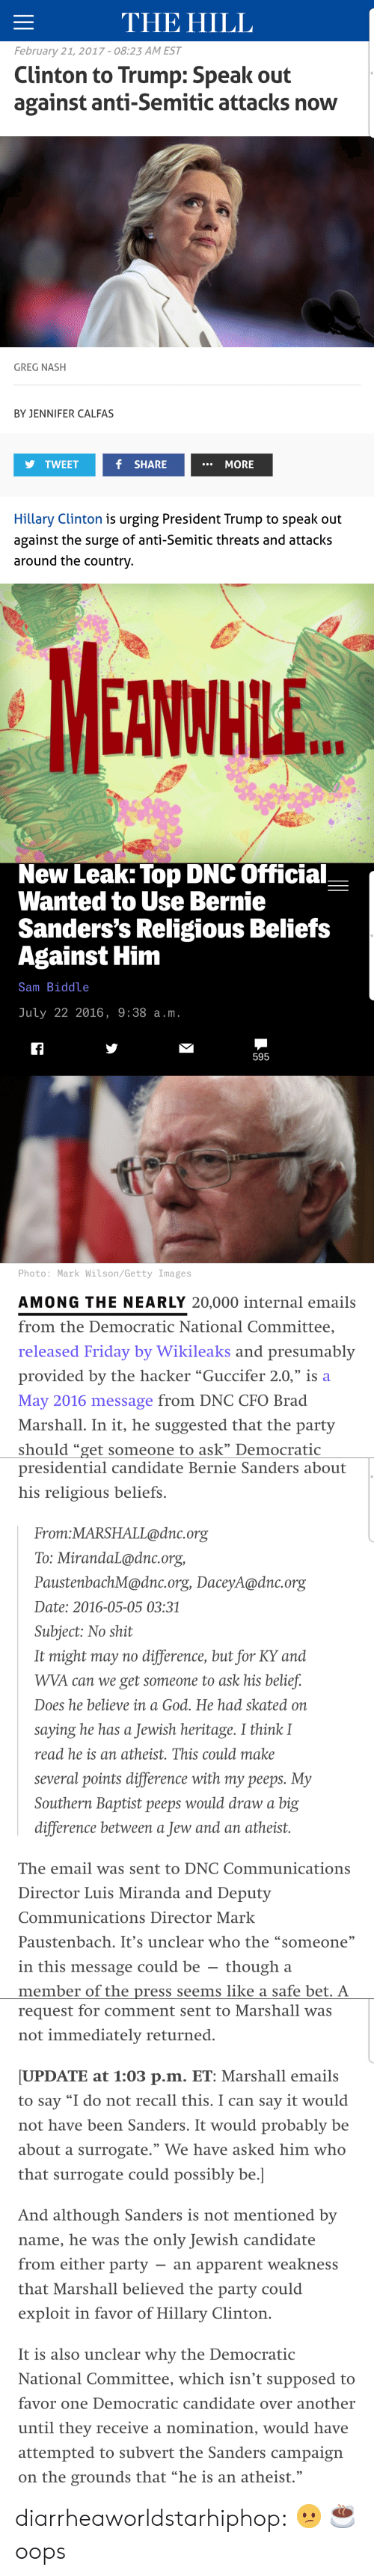 """Presidential Candidate: THE HILL  February 21, 2017-08:23 AM EST  Clinton to Trump: Speak out  against anti-Semitic attacks now  GREG NASH  BY JENNIFER CALFAS  TWEET  f SHARE  MORE  Hillary Clinton is urging President Trump to speak out  against the surge of anti-Semitic threats and attacks  around the country.   MEANWHILE   New  Leak:  Top  DNC  official  Wanted to Use Bernie  Sanders's Religious Beliefs  Against Him  Sam Biddle  July 22 2016, 9:38 a.m.  595  Photo: Mark Wilson/Getty Images  AMONG THE NEARLY 20,000 internal emails  from the Democratic National Committee,  released Friday by Wikileaks and presumably  provided by the hacker """"Guccifer 2.0,"""" is a  May 2016 message from DNC CFO Brad  Marshall. In it, he suggested that the party  should """"get someone to ask"""" Democratic   presidential candidate Bernie Sanders about  his religious beliefs.  From:MARSHALL@dnc.org  To: MirandaL@dnc.org,  PaustenbachM@dnc.org, DaceyA@dnc.org  Date: 2016-05-05 03:31  Subiect: No shit  It might may no difference, but for KY and  WVA can we get someone to ask his belief.  Does he believe in a God. He had skated on  saying he has a Jewish heritage. I think I  read he is an atheist.This could make  several points difference with my peeps. My  Southern Baptist peeps would draw a big  difference between a Jew and an atheist.  The email was sent to DNC Communications  Director Luis Miranda and Deputy  Communications Director Mark  Paustenbach. It's unclear who the """"someone""""  in this message could be - thougha  member of the press seems like a safe bet, A   request for comment sent to Marshall was  not immediately returned  UPDATE at 1:03 p.m. ET: Marshall emails  to say """"I do not recall this, I can say it would  not have been Sanders. It would probably be  about a surrogate."""" We have asked him who  that surrogate could possibly be.  And although Sanders is not mentioned by  name, he was the only Jewish candidate  from either party-an apparent weakness  that Marshall believed the party"""